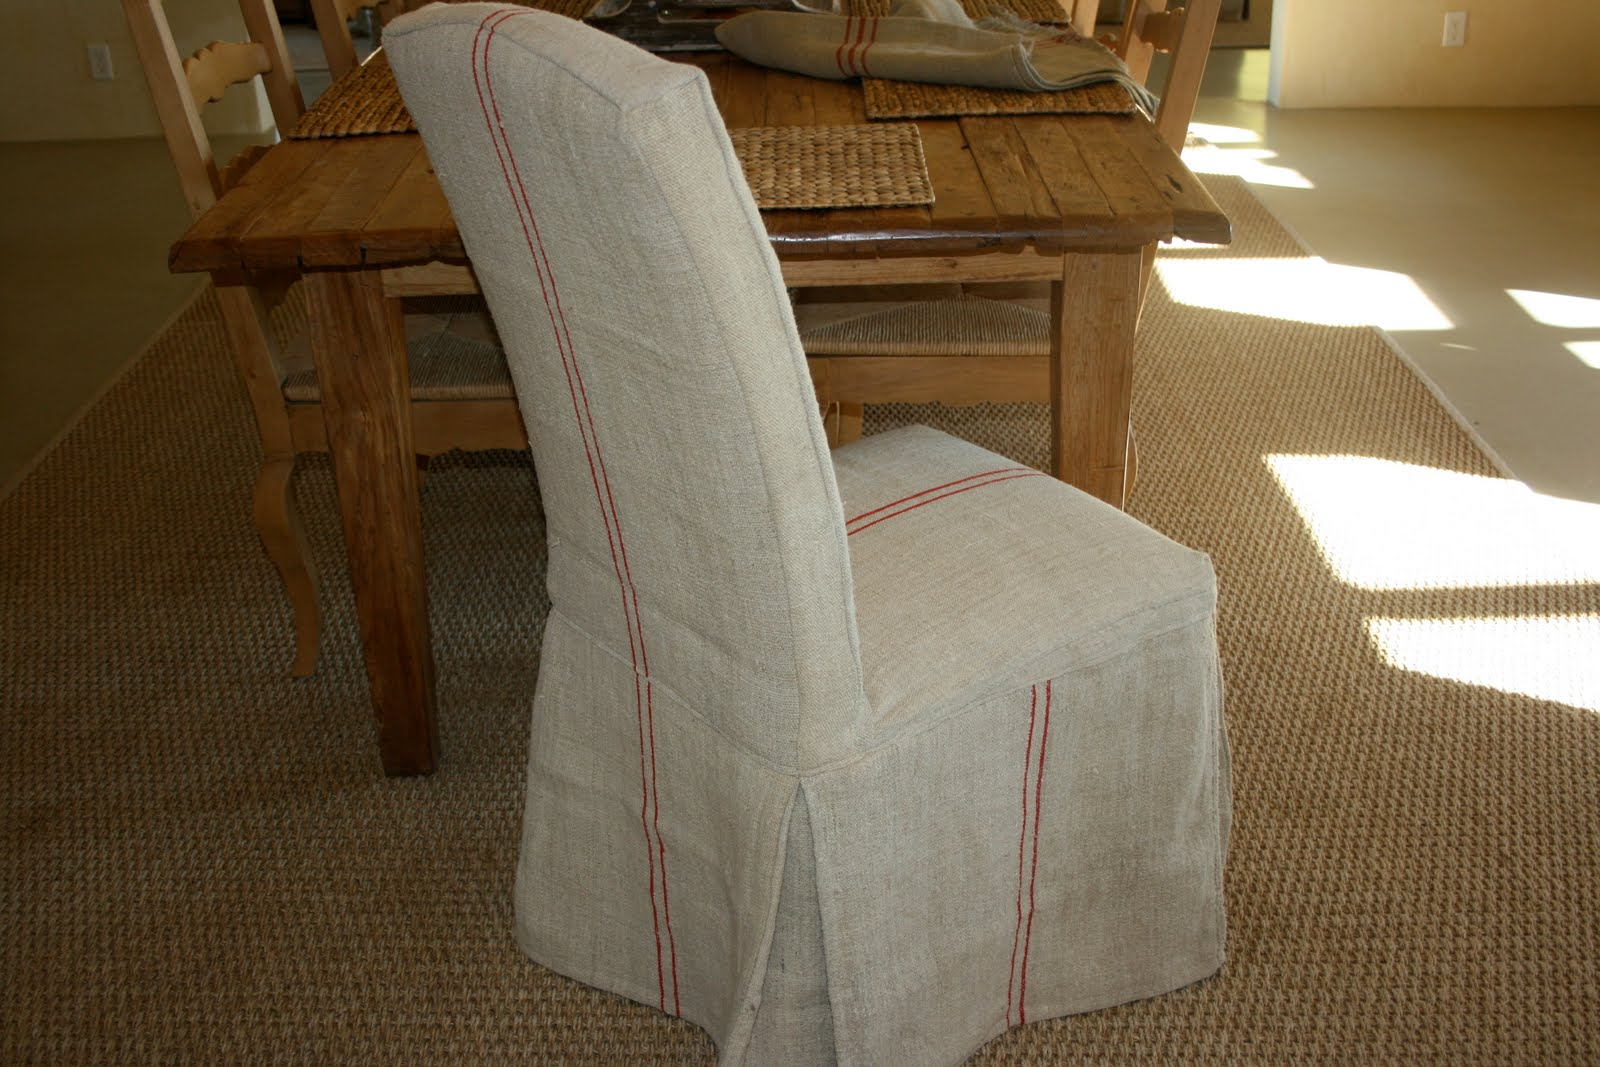 burlap chair covers for folding chairs ot posture ultra vignette design and grain sack mania